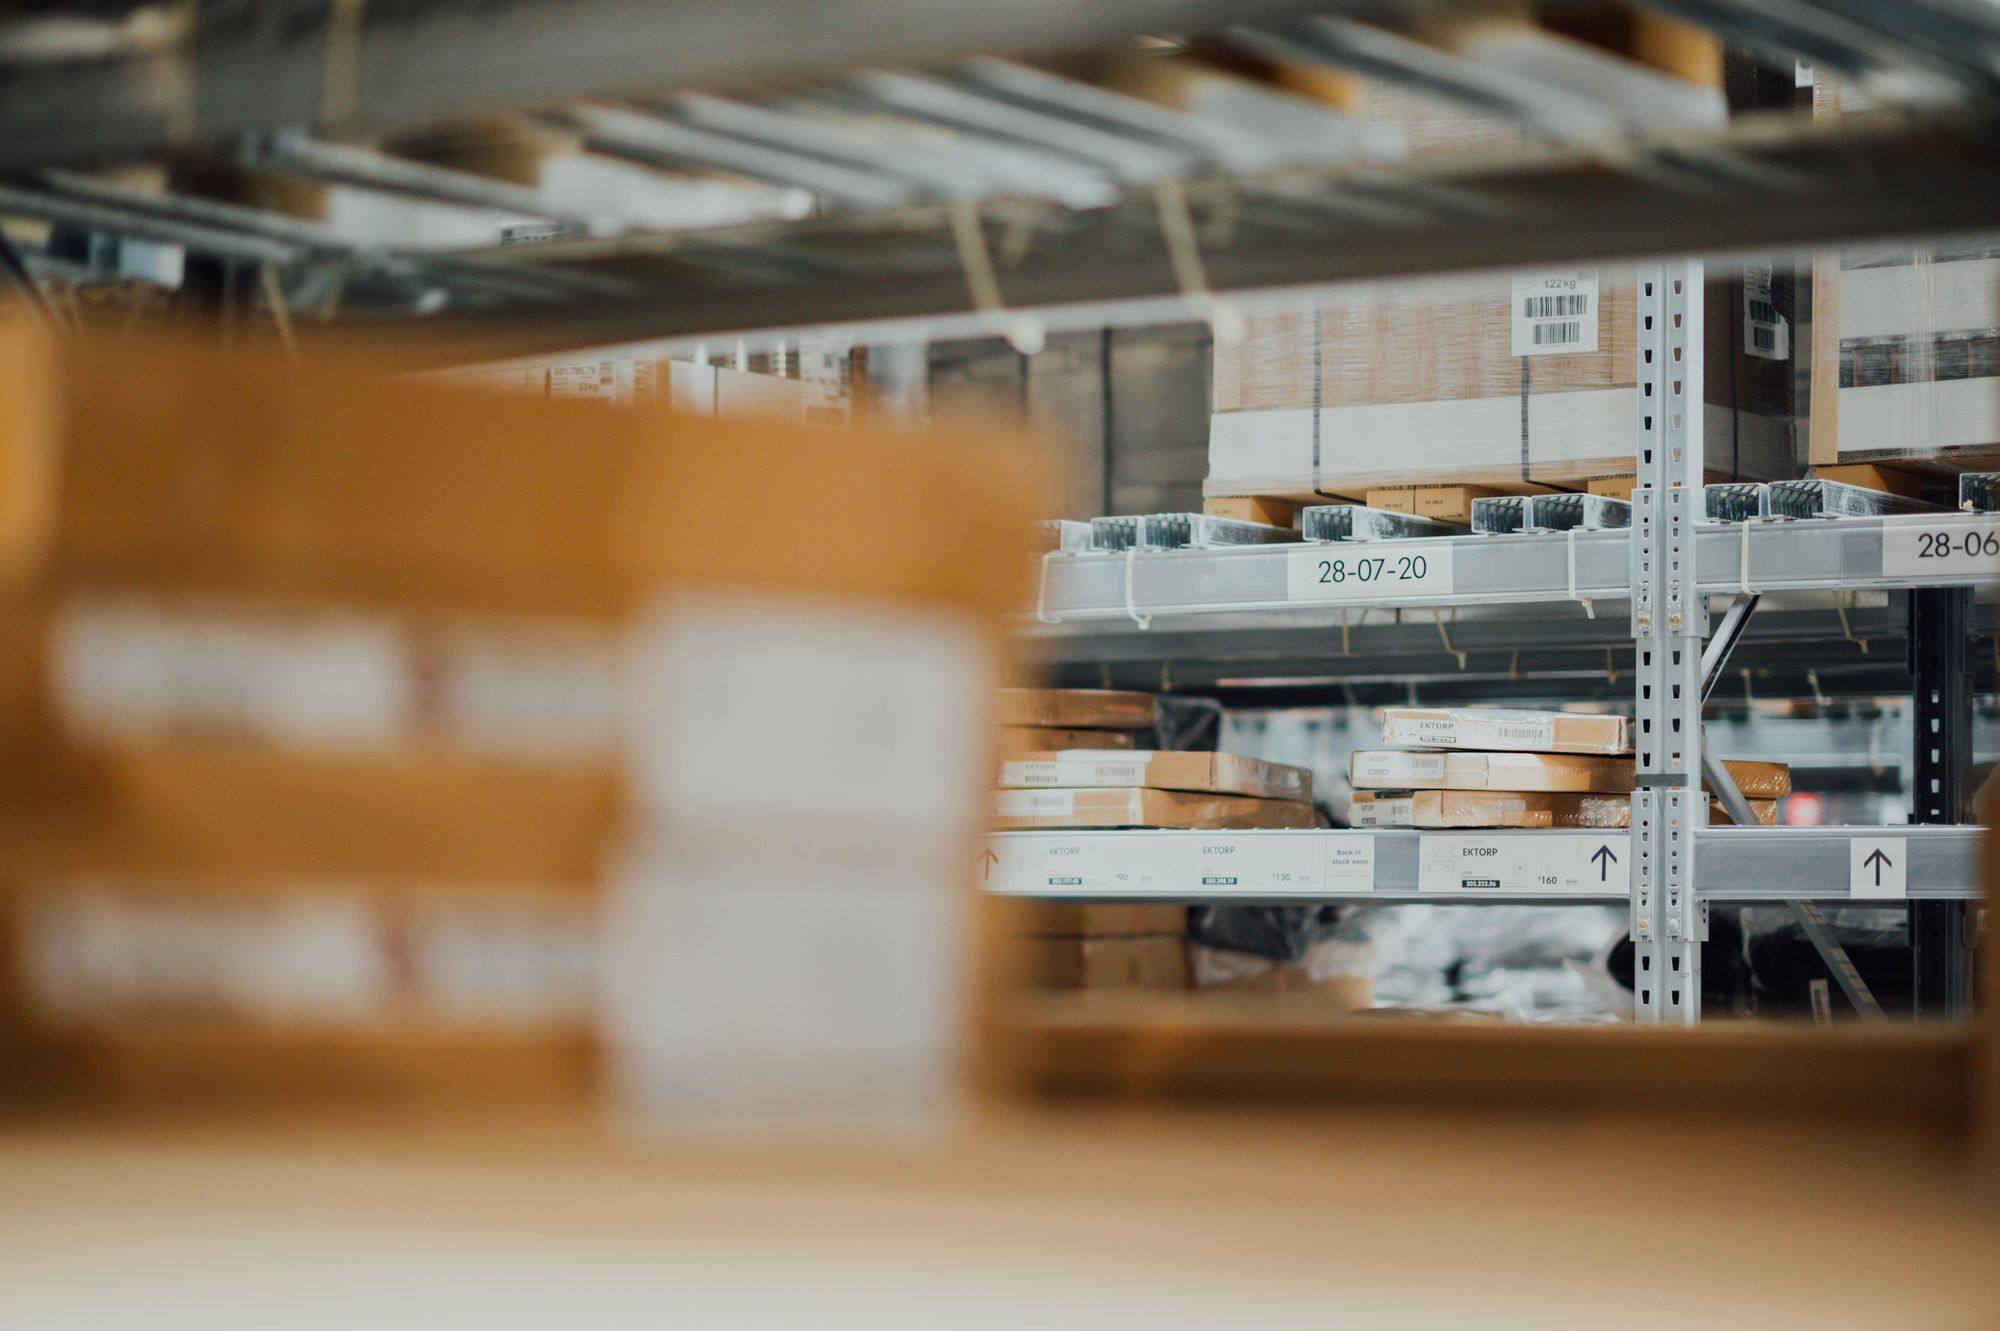 Storing Inventory is Part of eCommerce Fulfillment Process